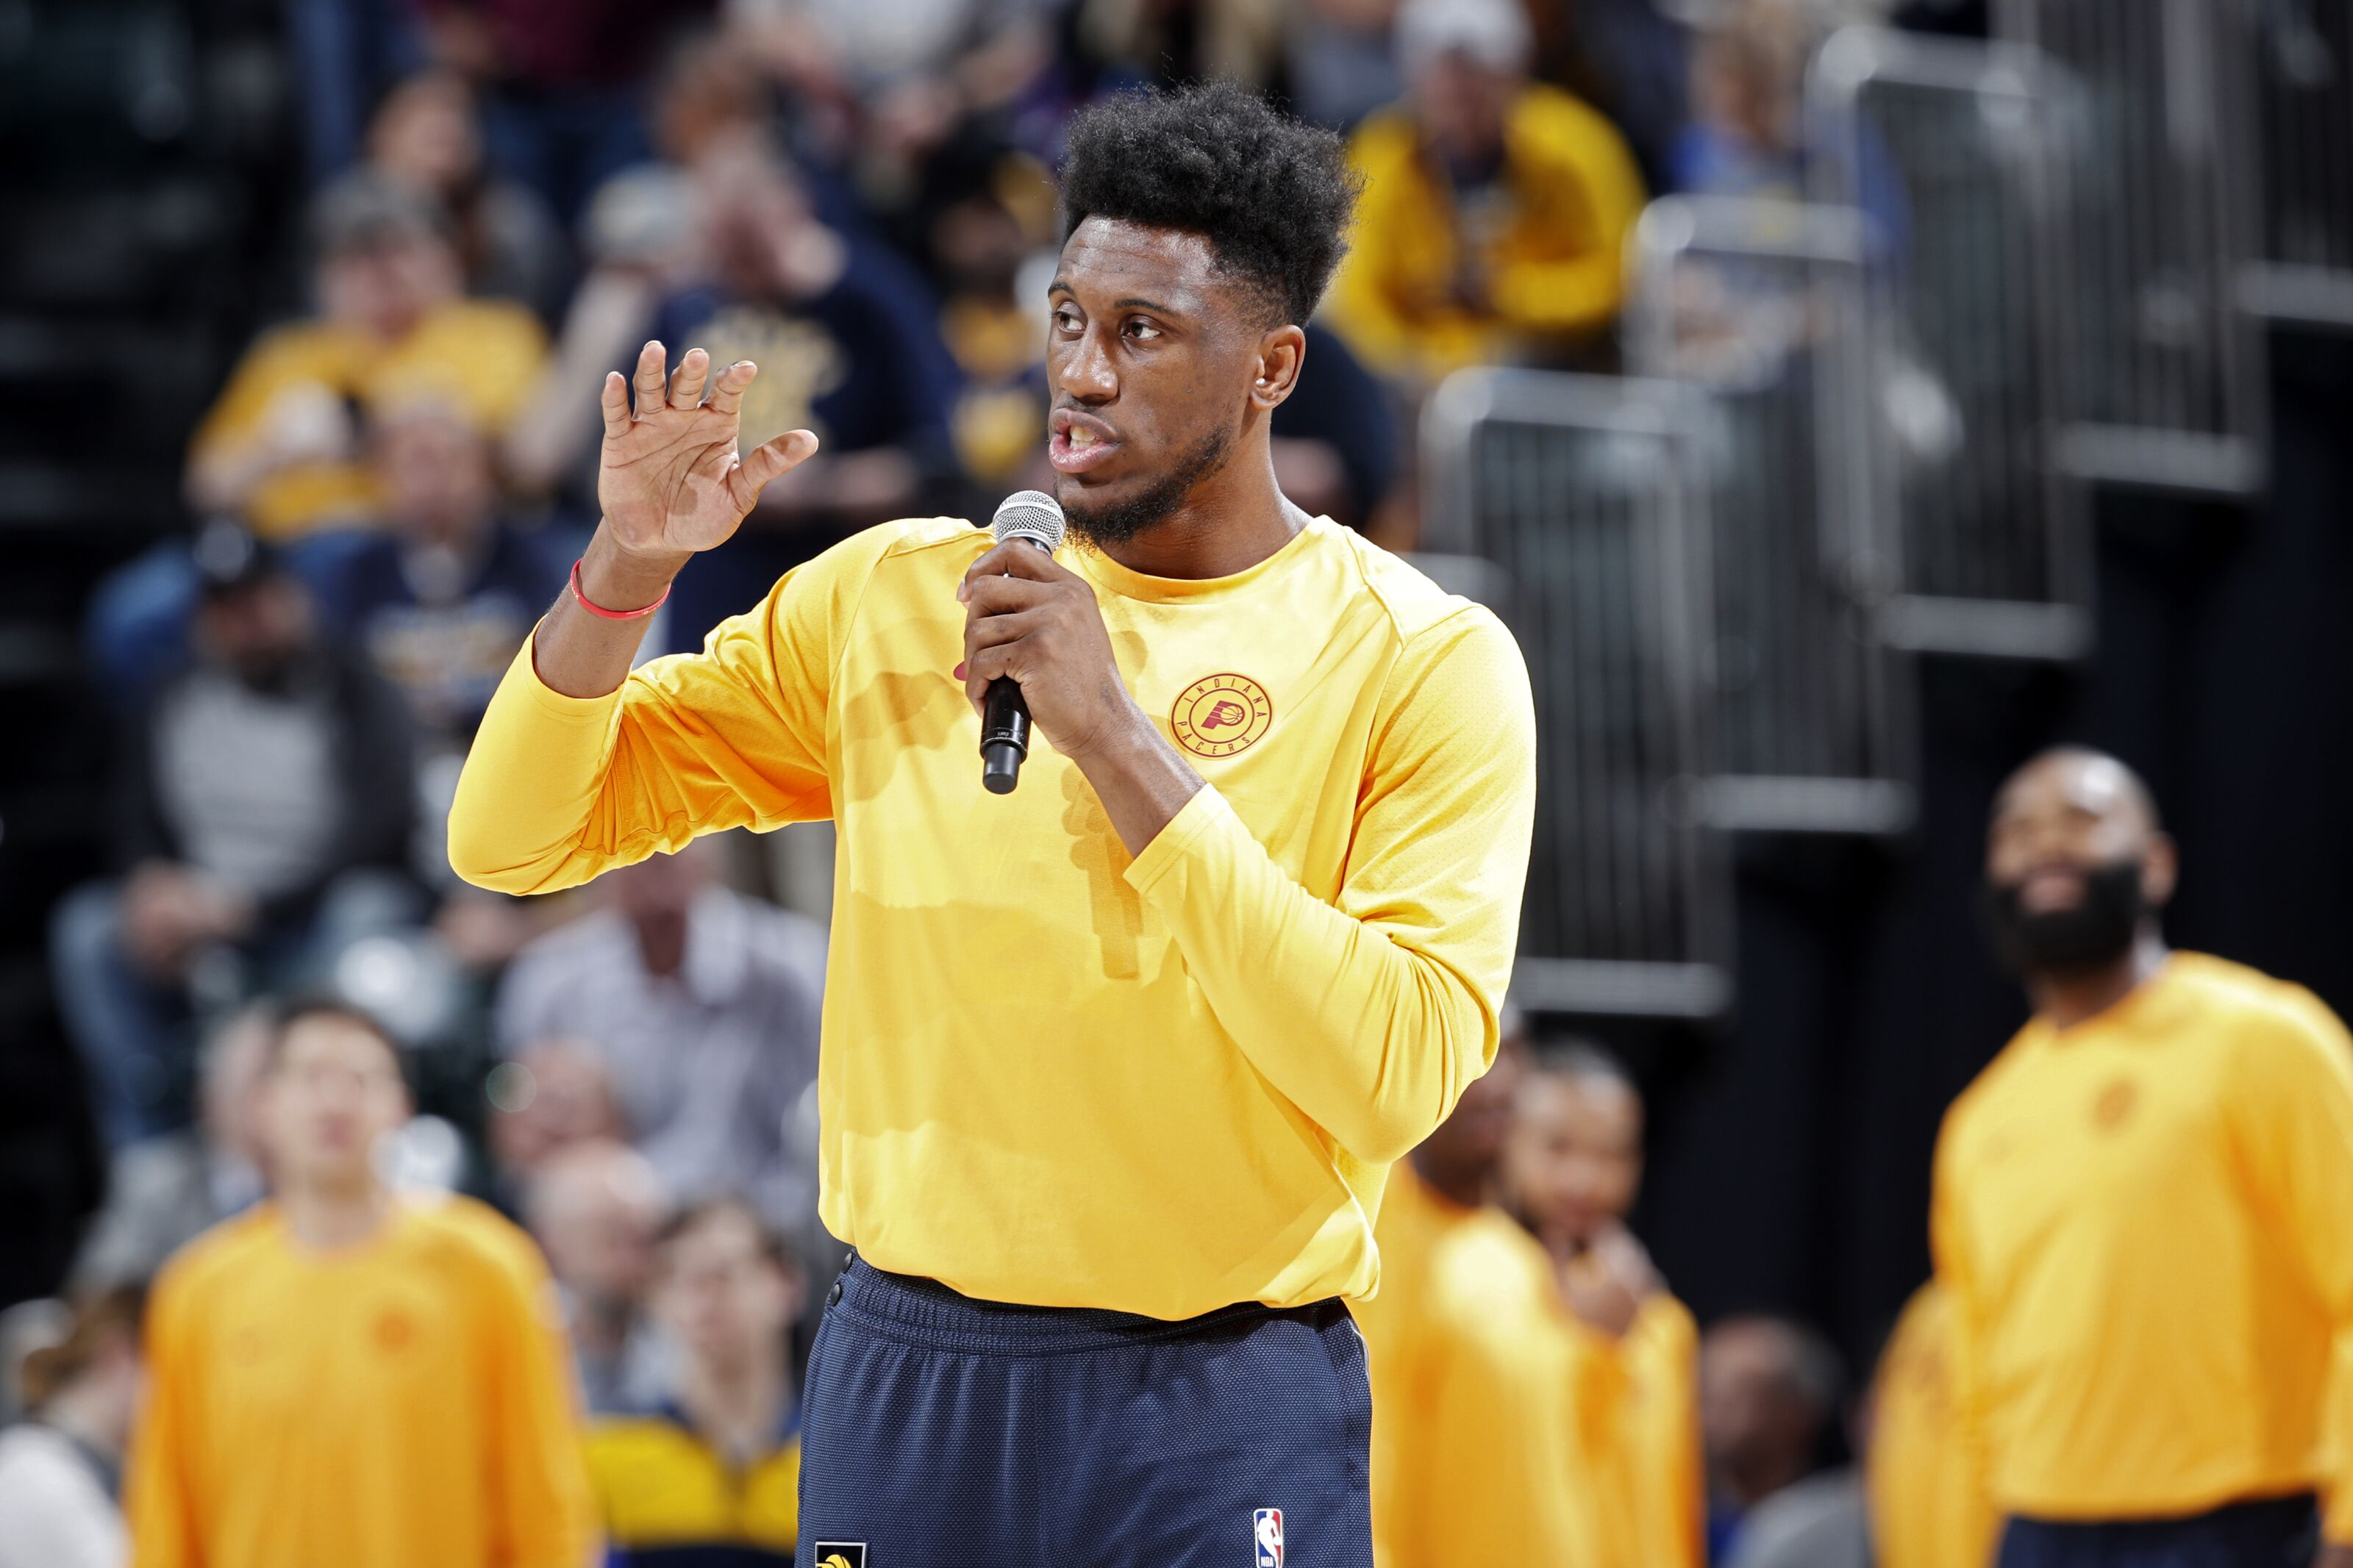 Who will take over as the veteran leader for the Indiana Pacers?